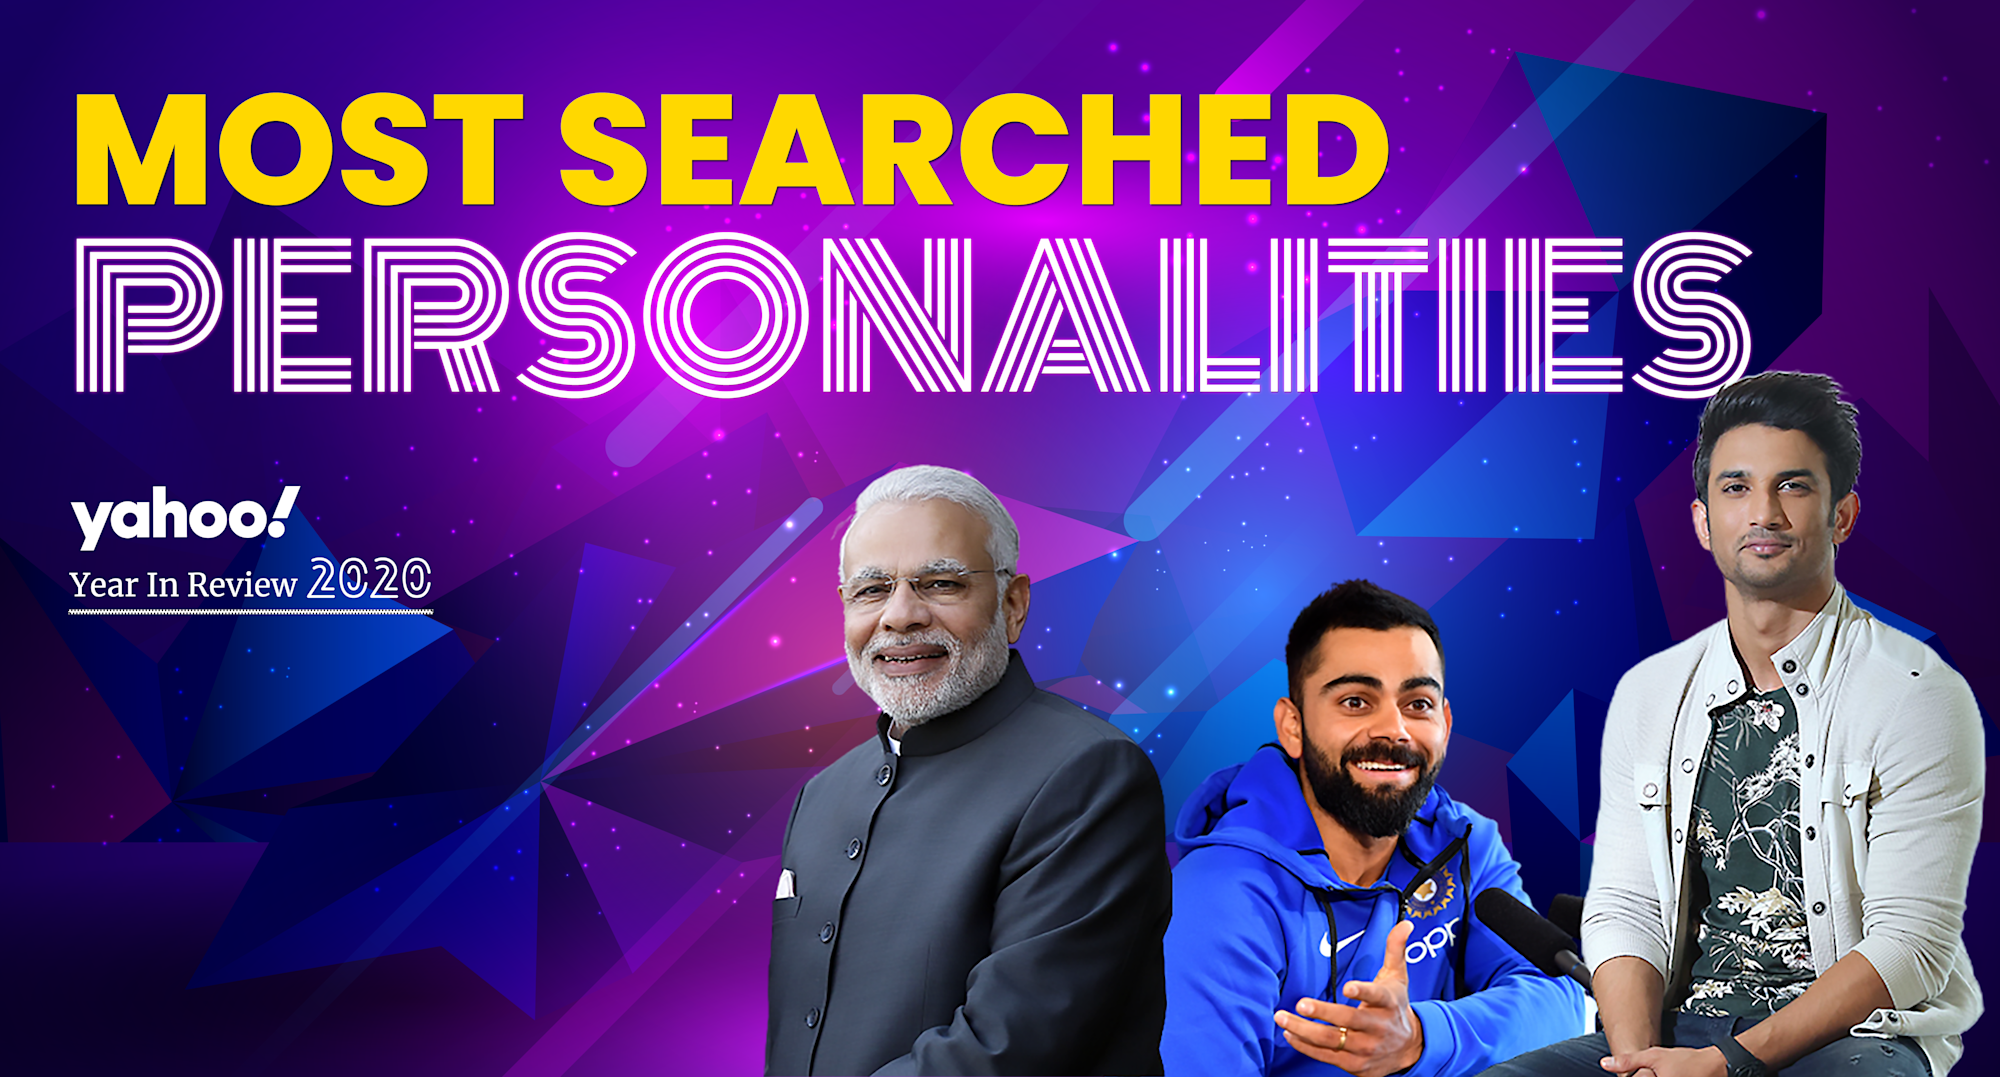 Yahoo's 20 most searched personalities, 2020